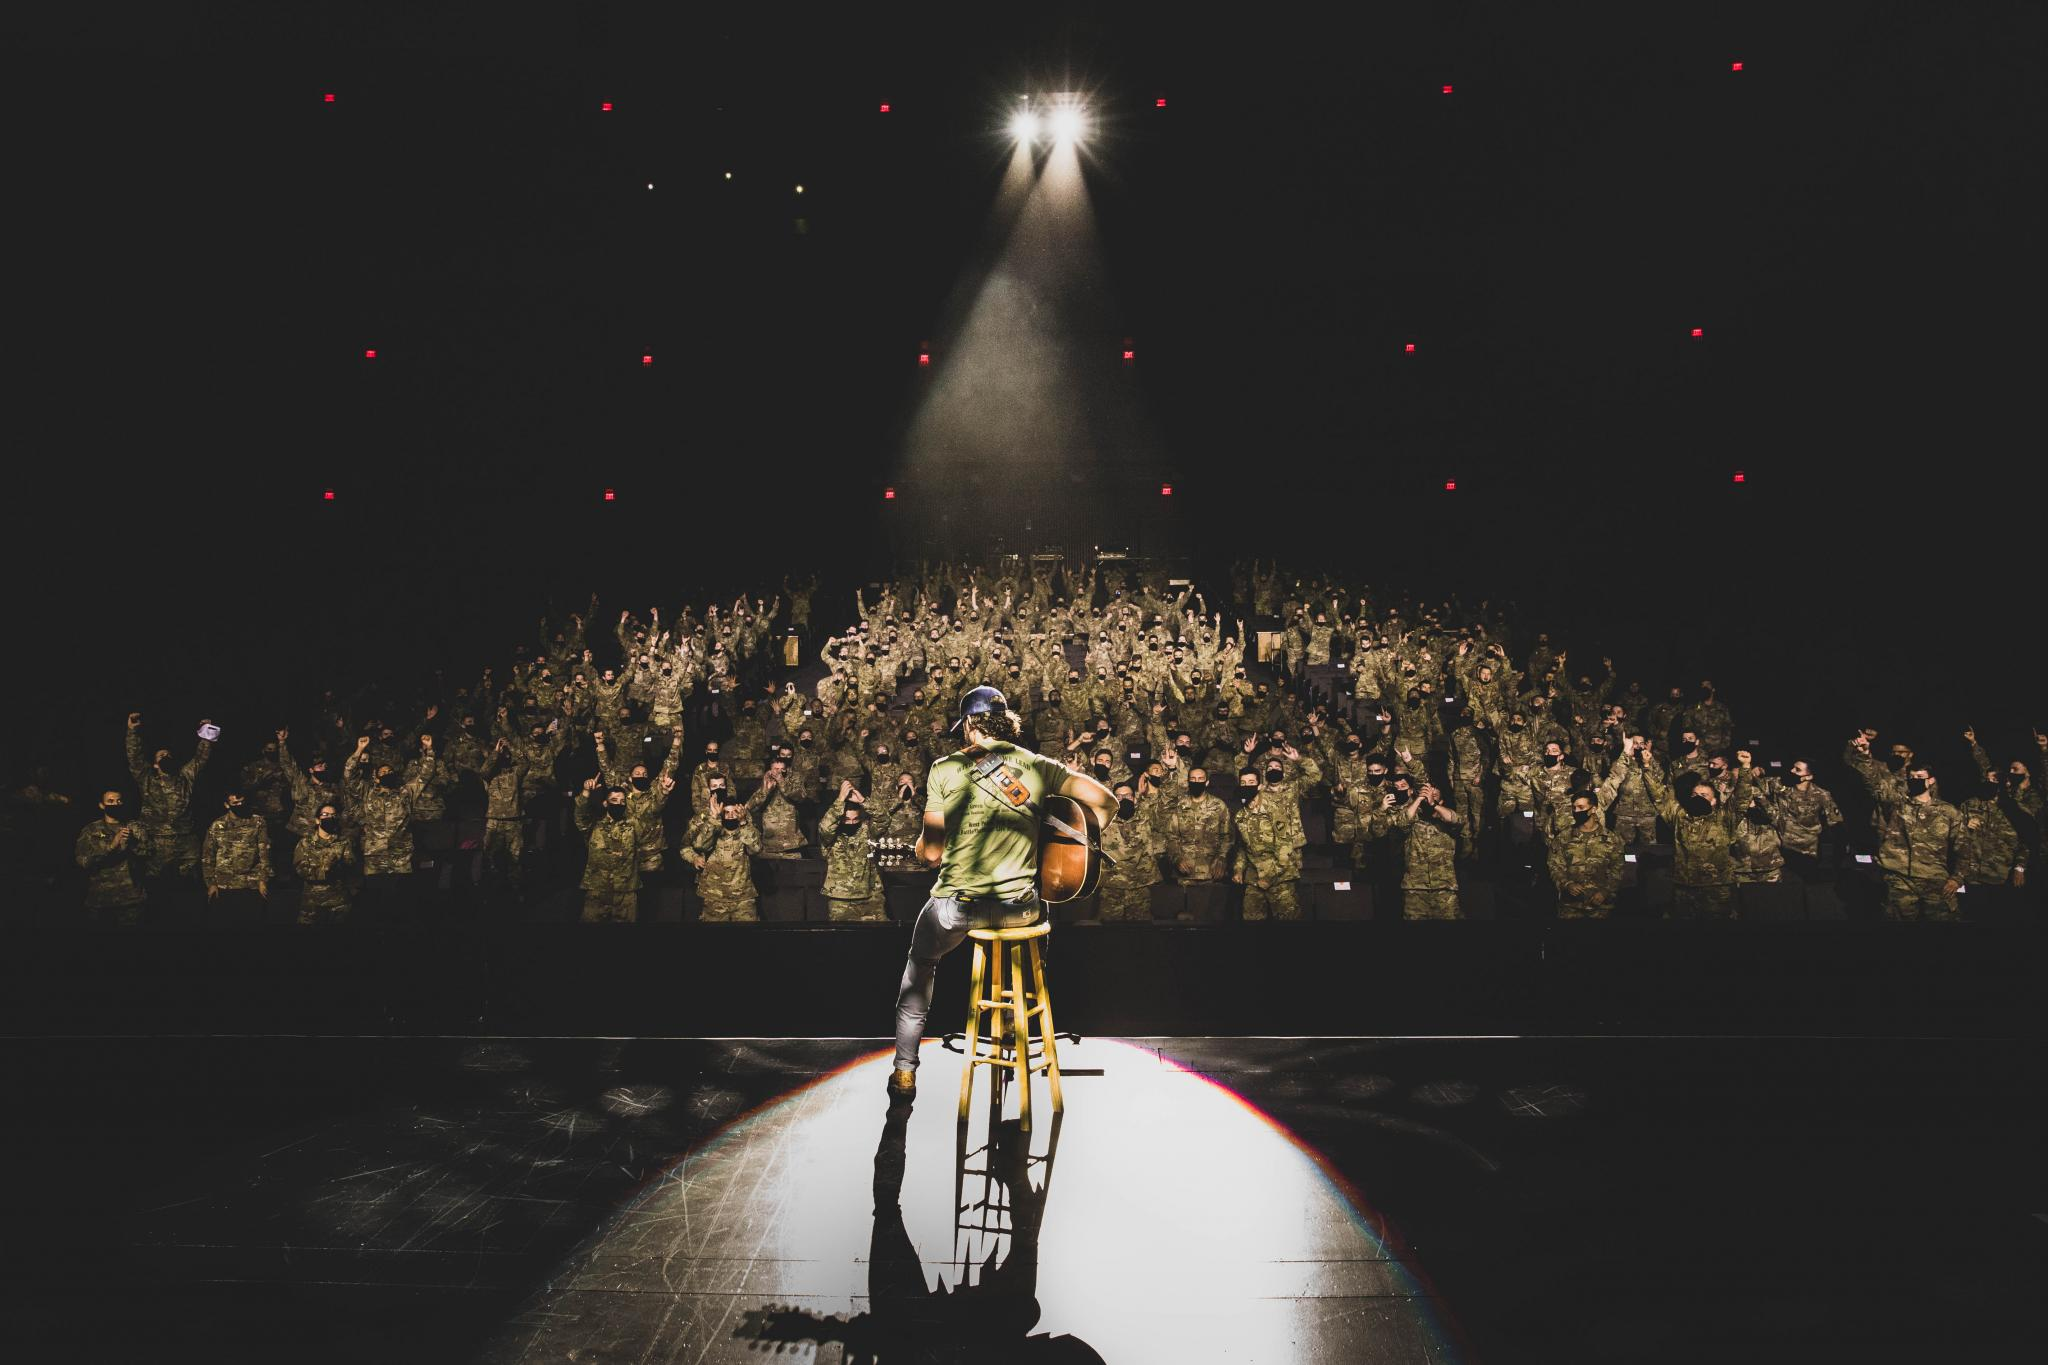 """Platinum country artist Riley Green performs in front of the U.S. Military Academy Corps of Cadets during the """"We Stand Together"""" concert on Sept. 11 at West Point."""